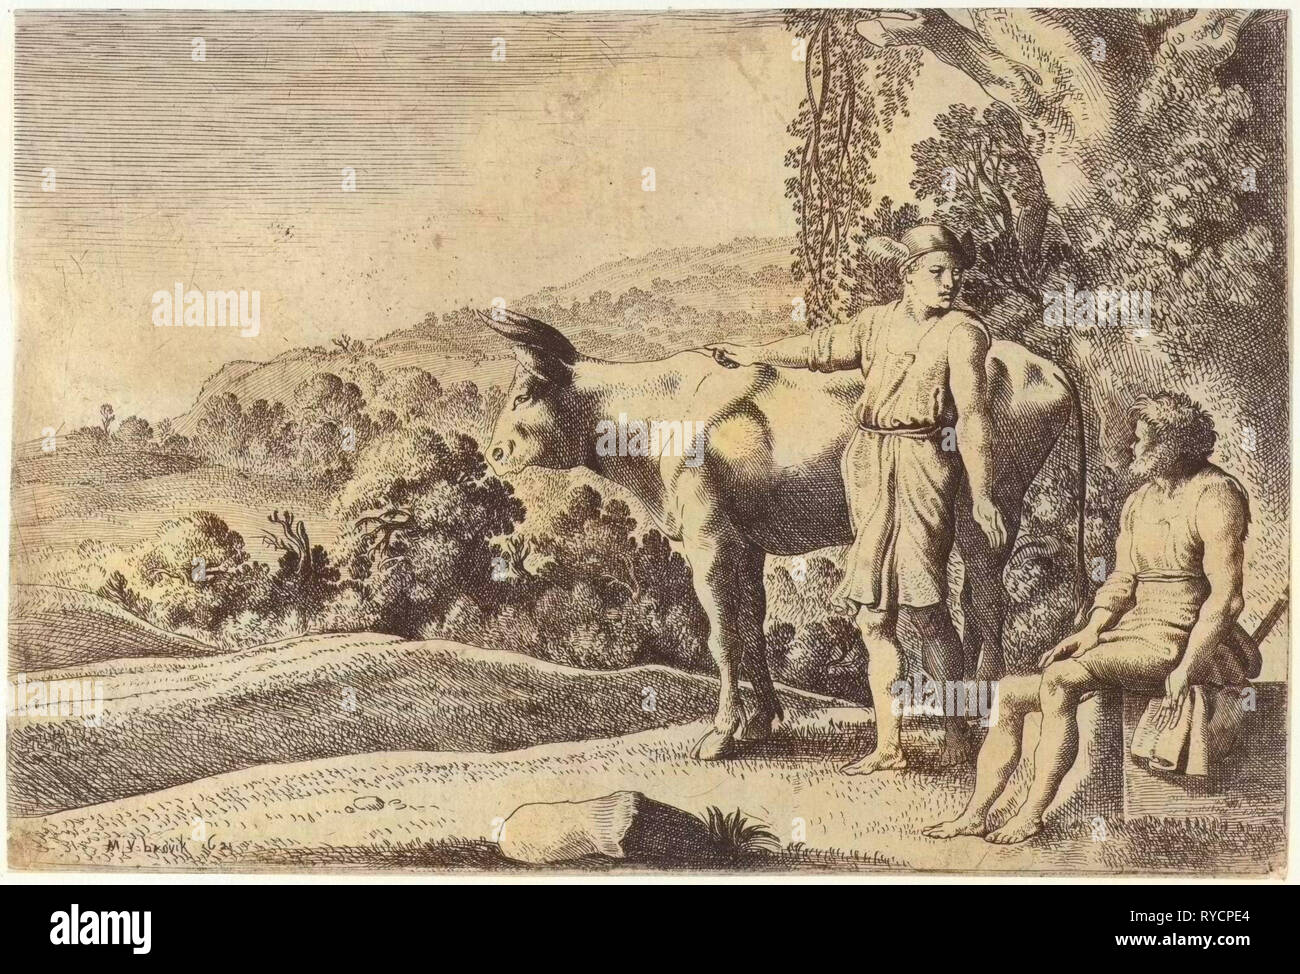 Mercury is pointing to the cow Io and looks at Argus, which sits on a stone block, scene from Ovid's Metamorphoses, Met. I, 679-688, print maker: Moyses van Wtenbrouck (mentioned on object), Dating 1621 - Stock Image